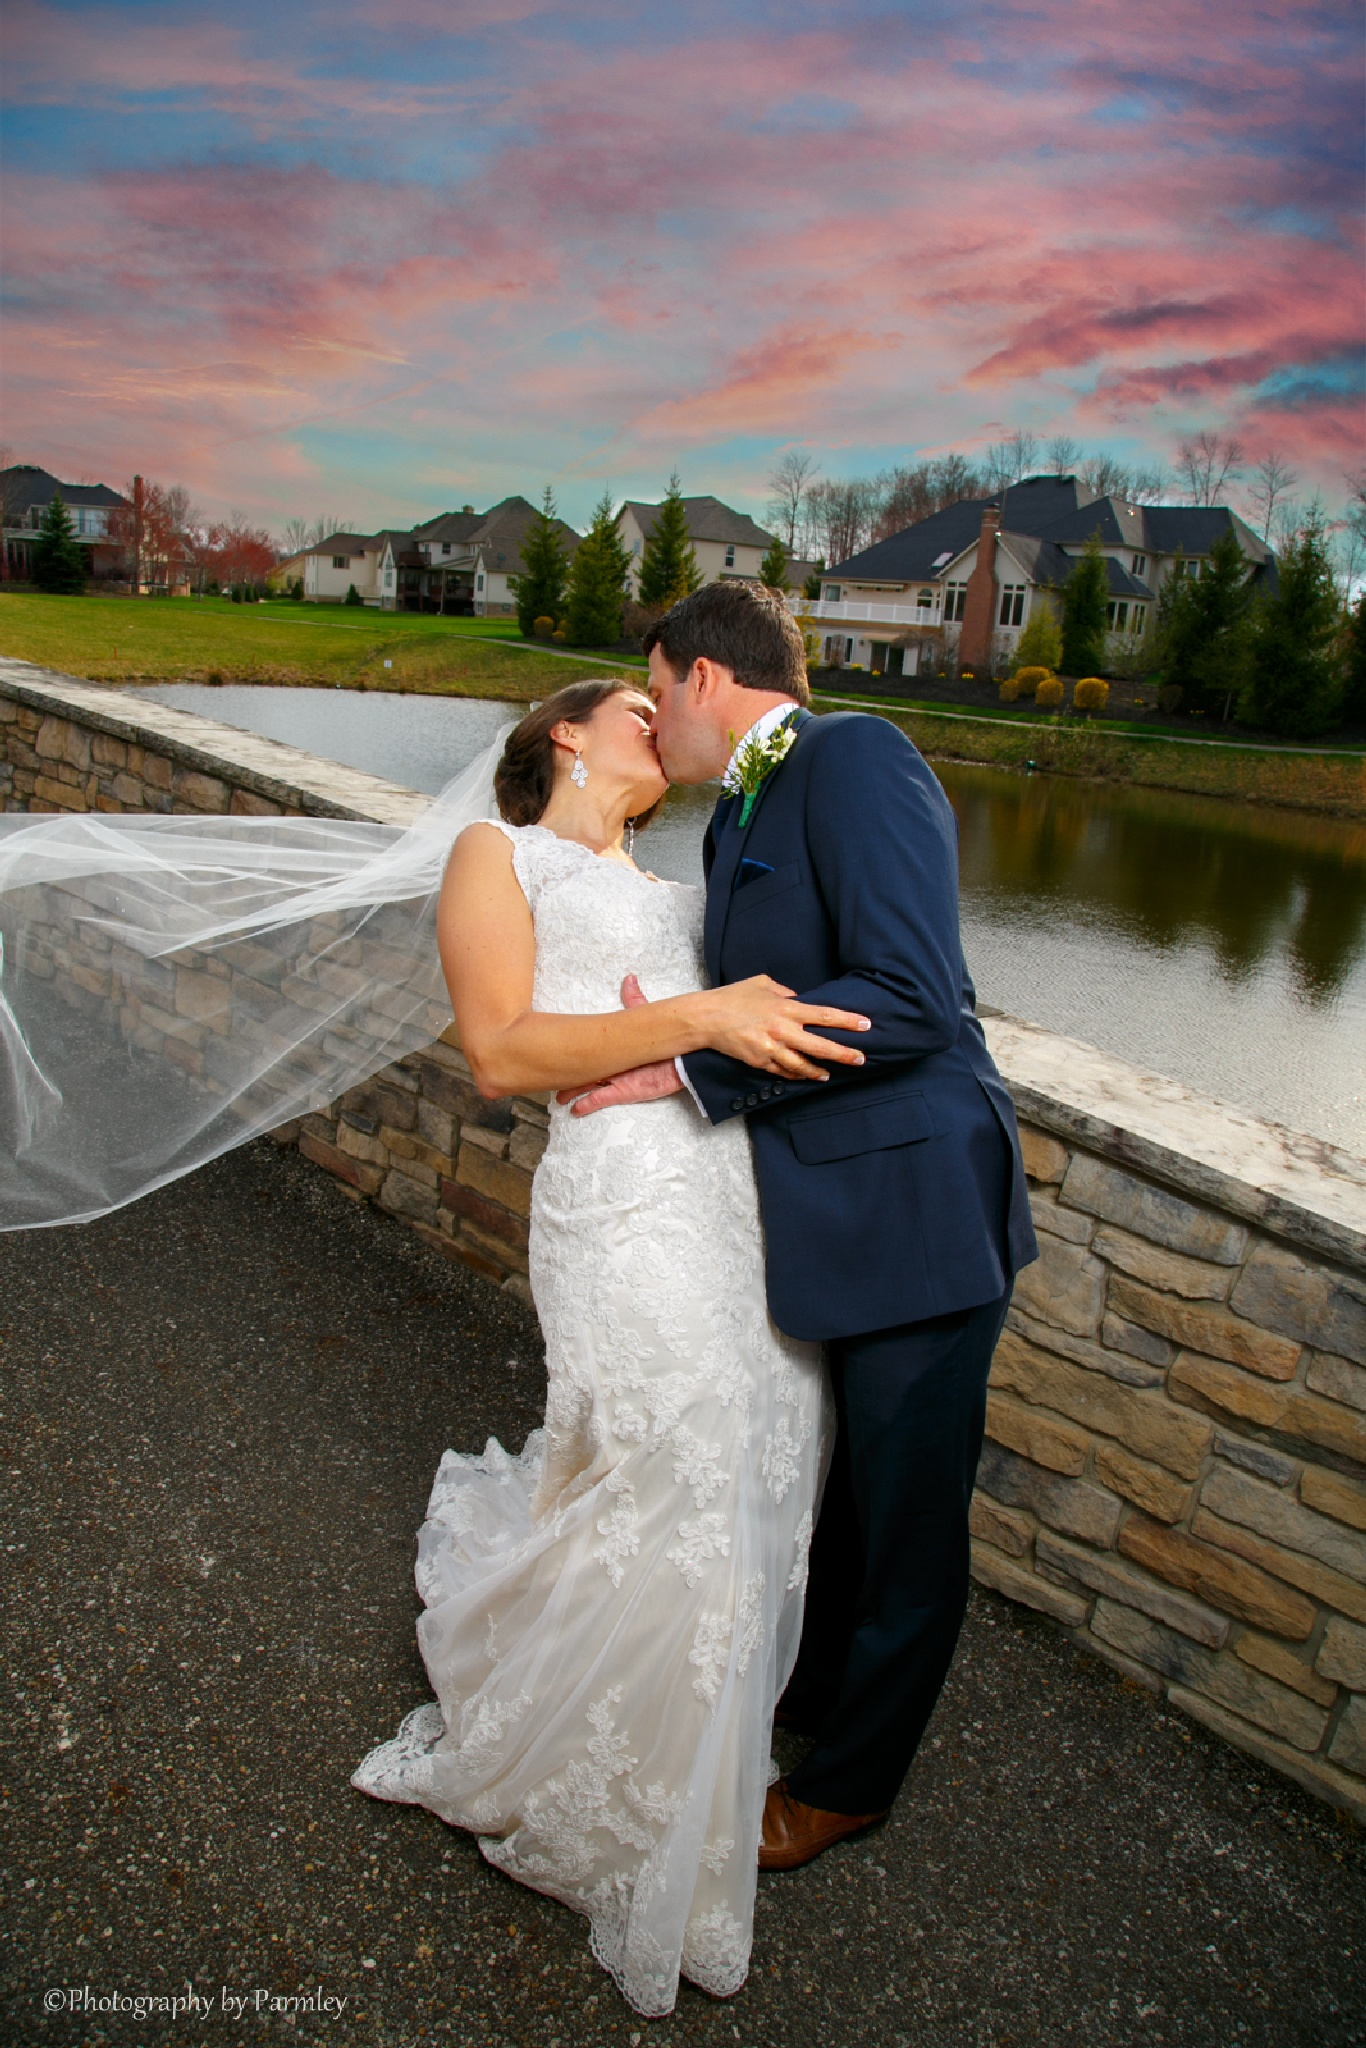 Wedding Kiss by JP Parmley